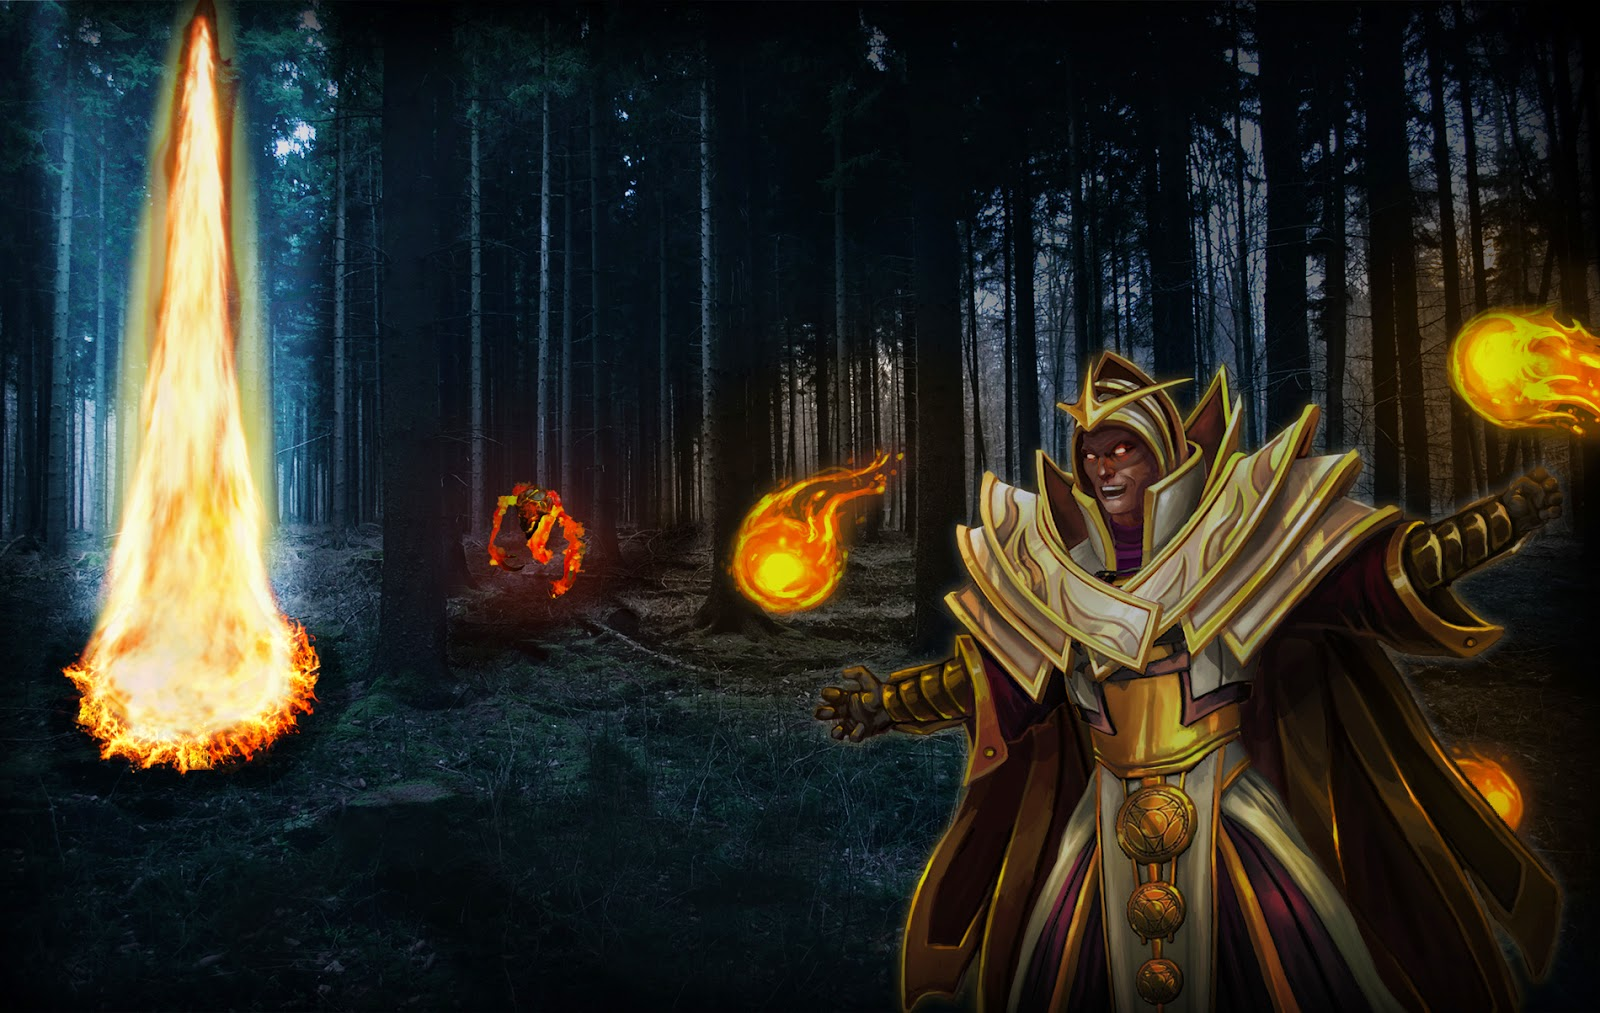 Dota 2 wallpaper hd invoker design home and wallpaper wallpaper hero invoker dota 2 high definition hd with the best quality and can be used for desktop background or for poster tournament or simply voltagebd Images